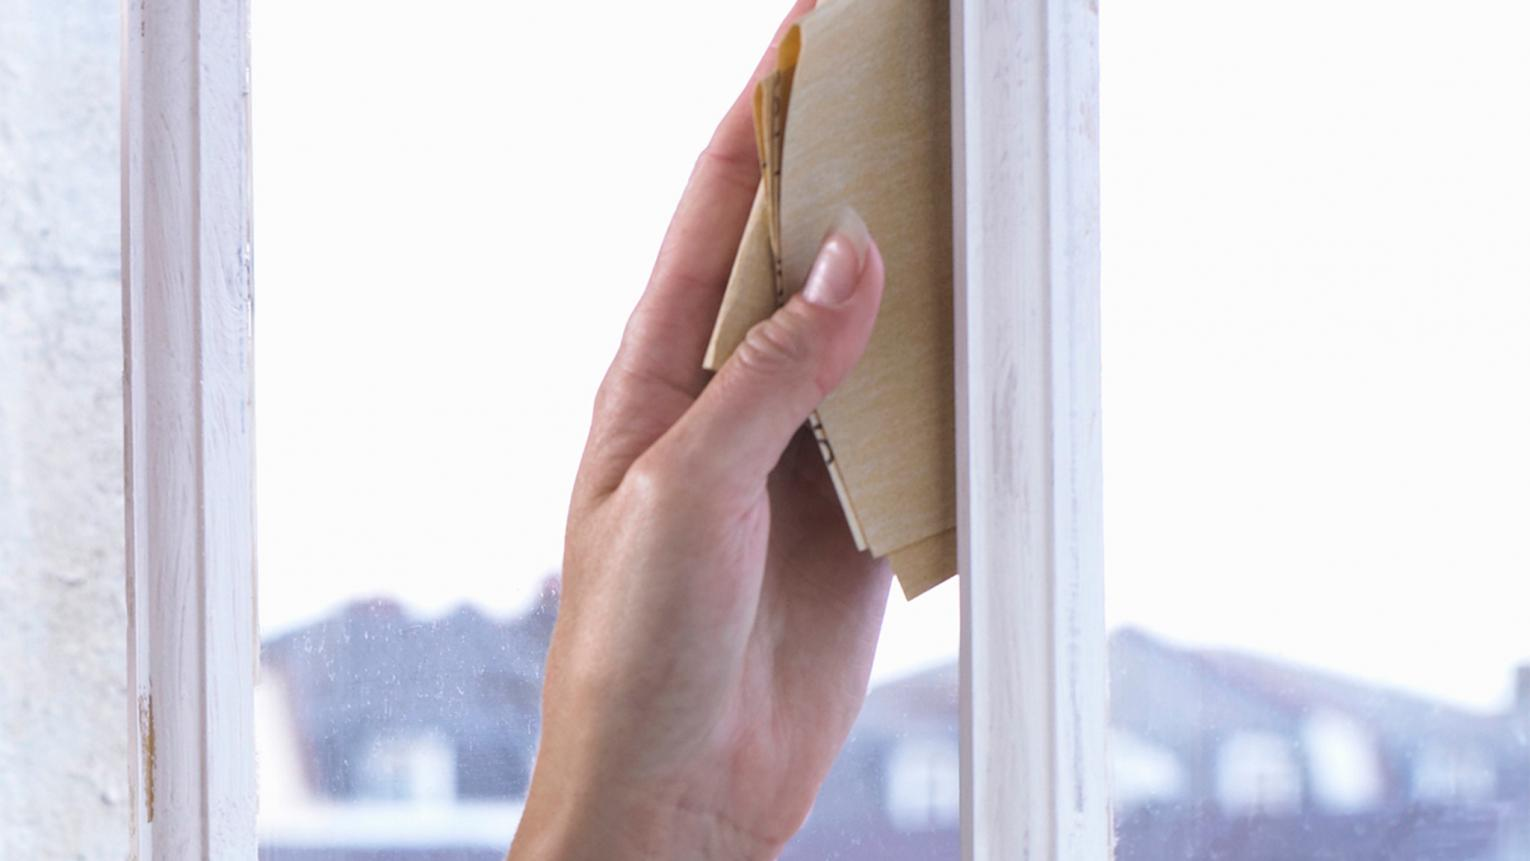 Freshly painted window frames can transform a room. Follow these tips on prepping wood or metal frames to get the best results.